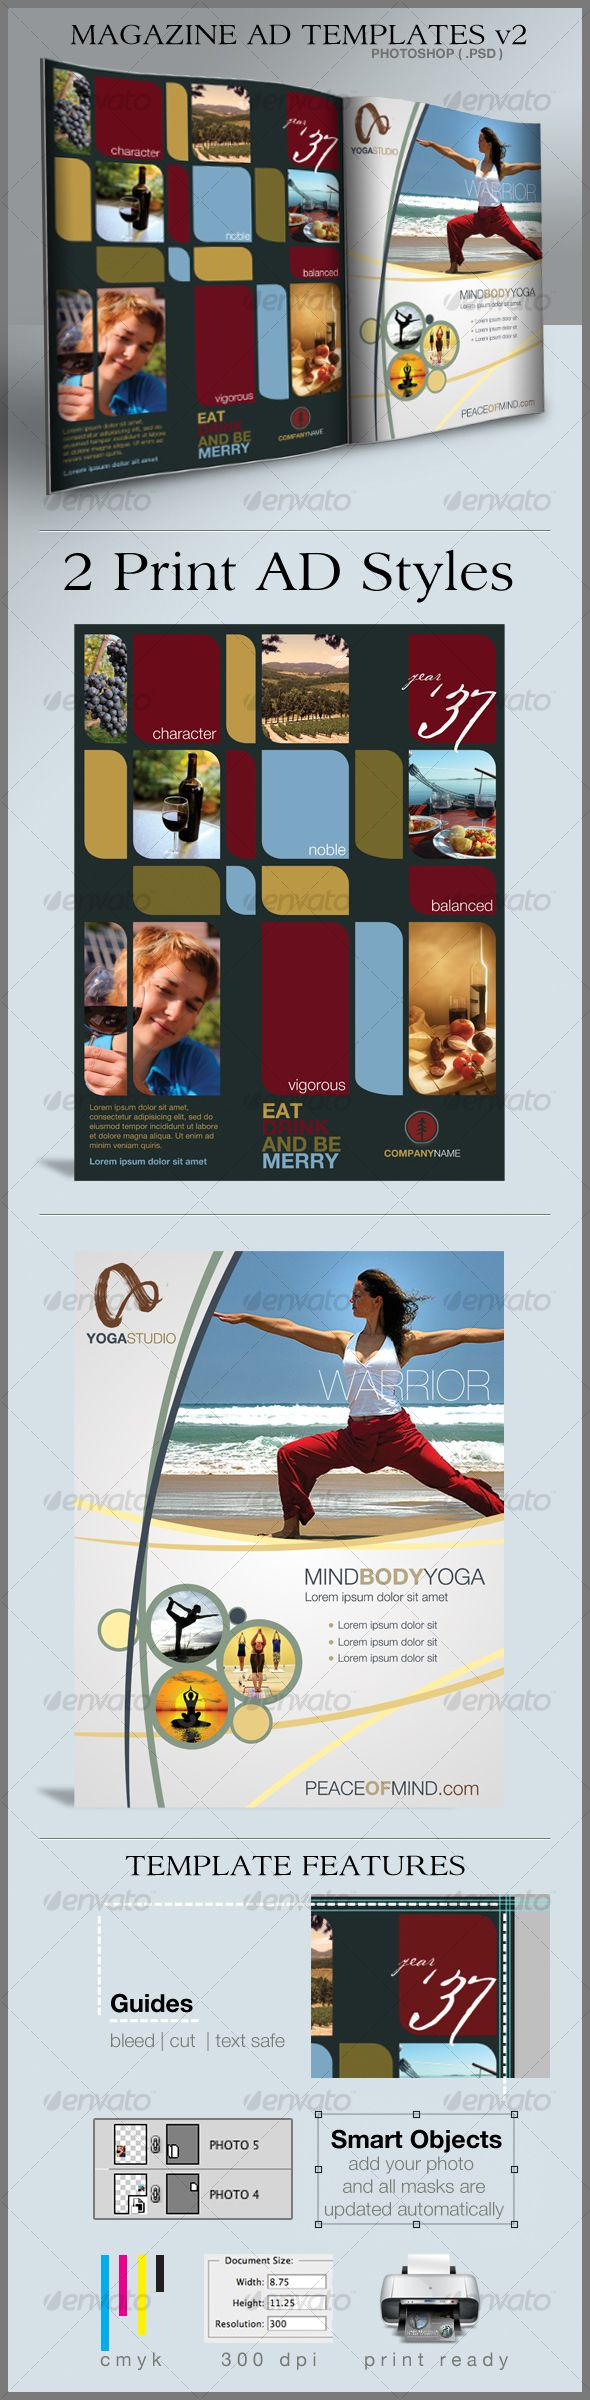 Version 2 of the Popular Print Ad Templates for full page magazine ...